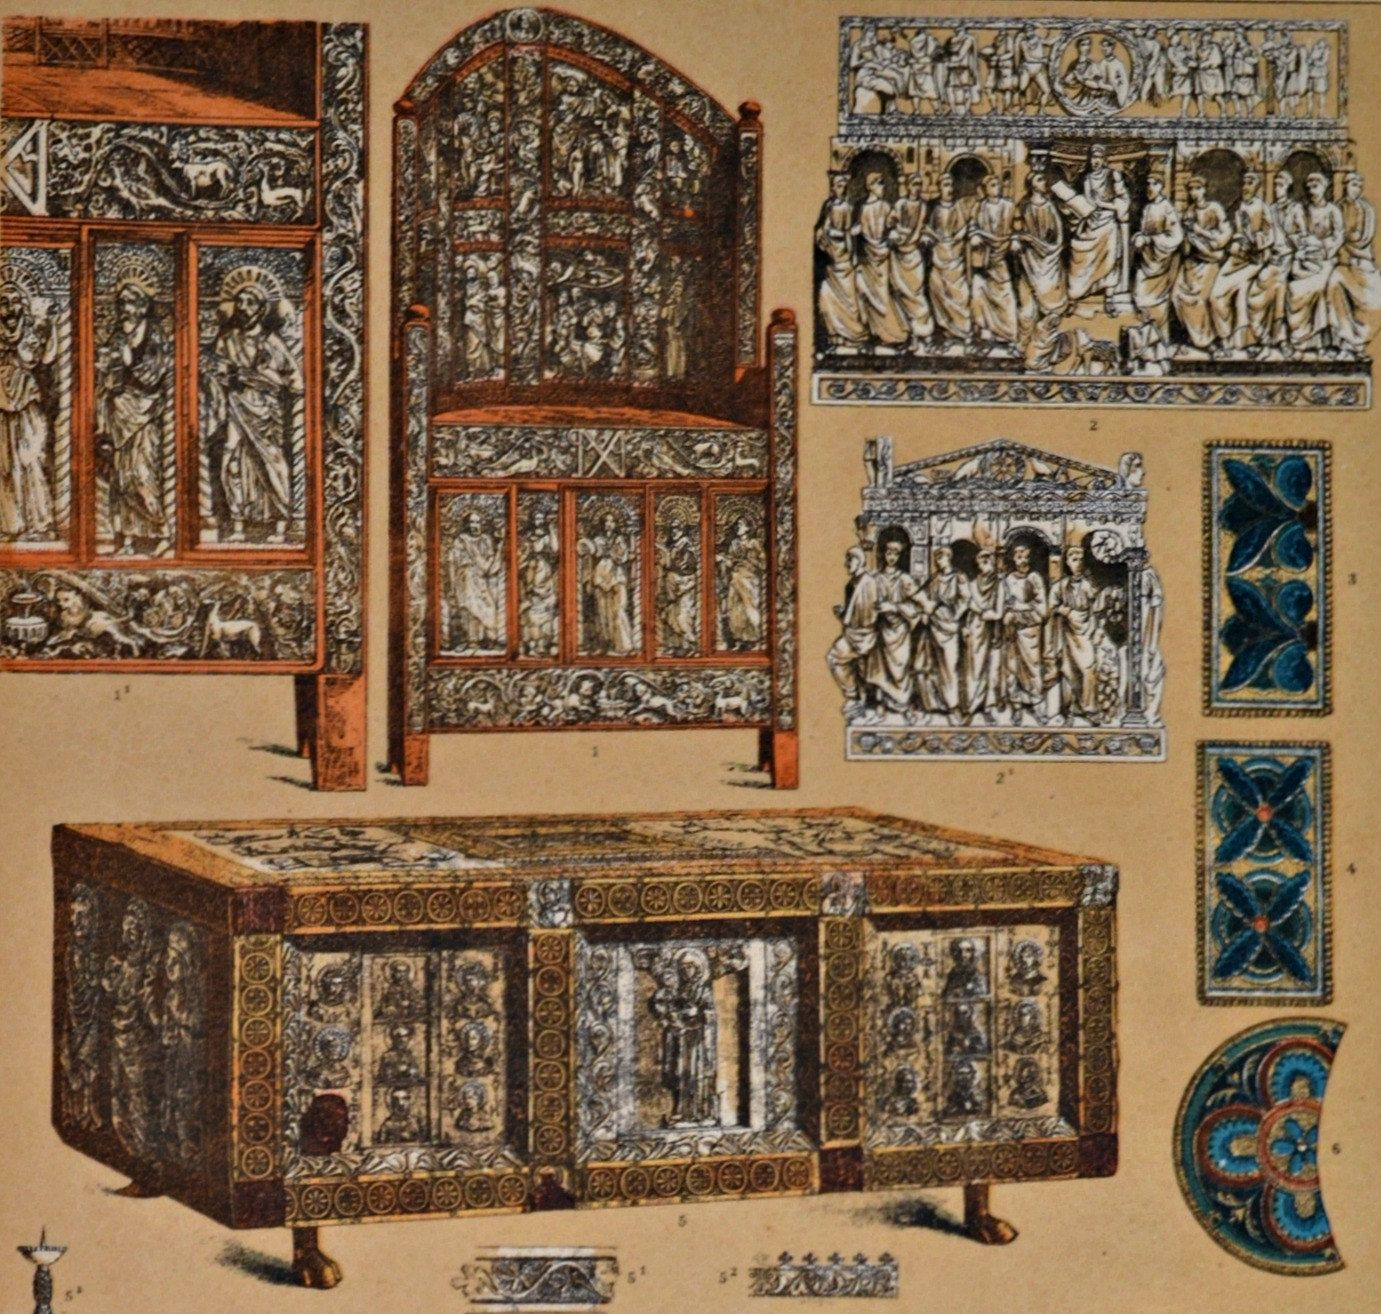 Byzantine Furnitures Ornaments And Reliefs Middle Ages  # Muebles Bizantinos